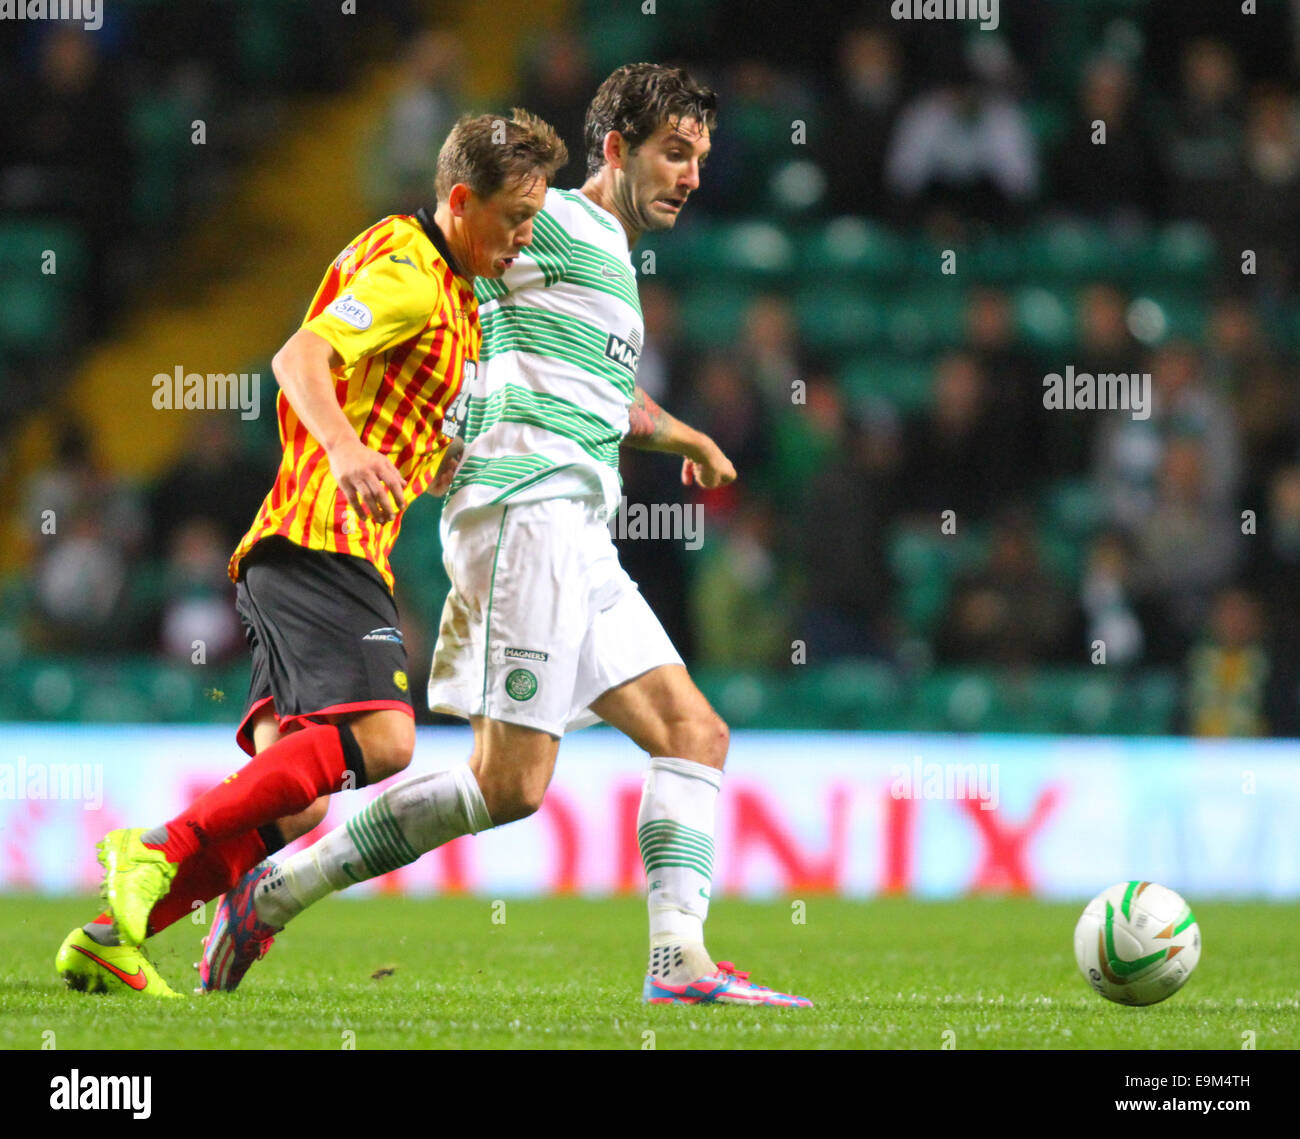 Glasgow, Scotland. 29th Oct, 2014. Scottish League Cup. Celtic versus Partick Thistle. Charlie Mulgrew battles with - Stock Image